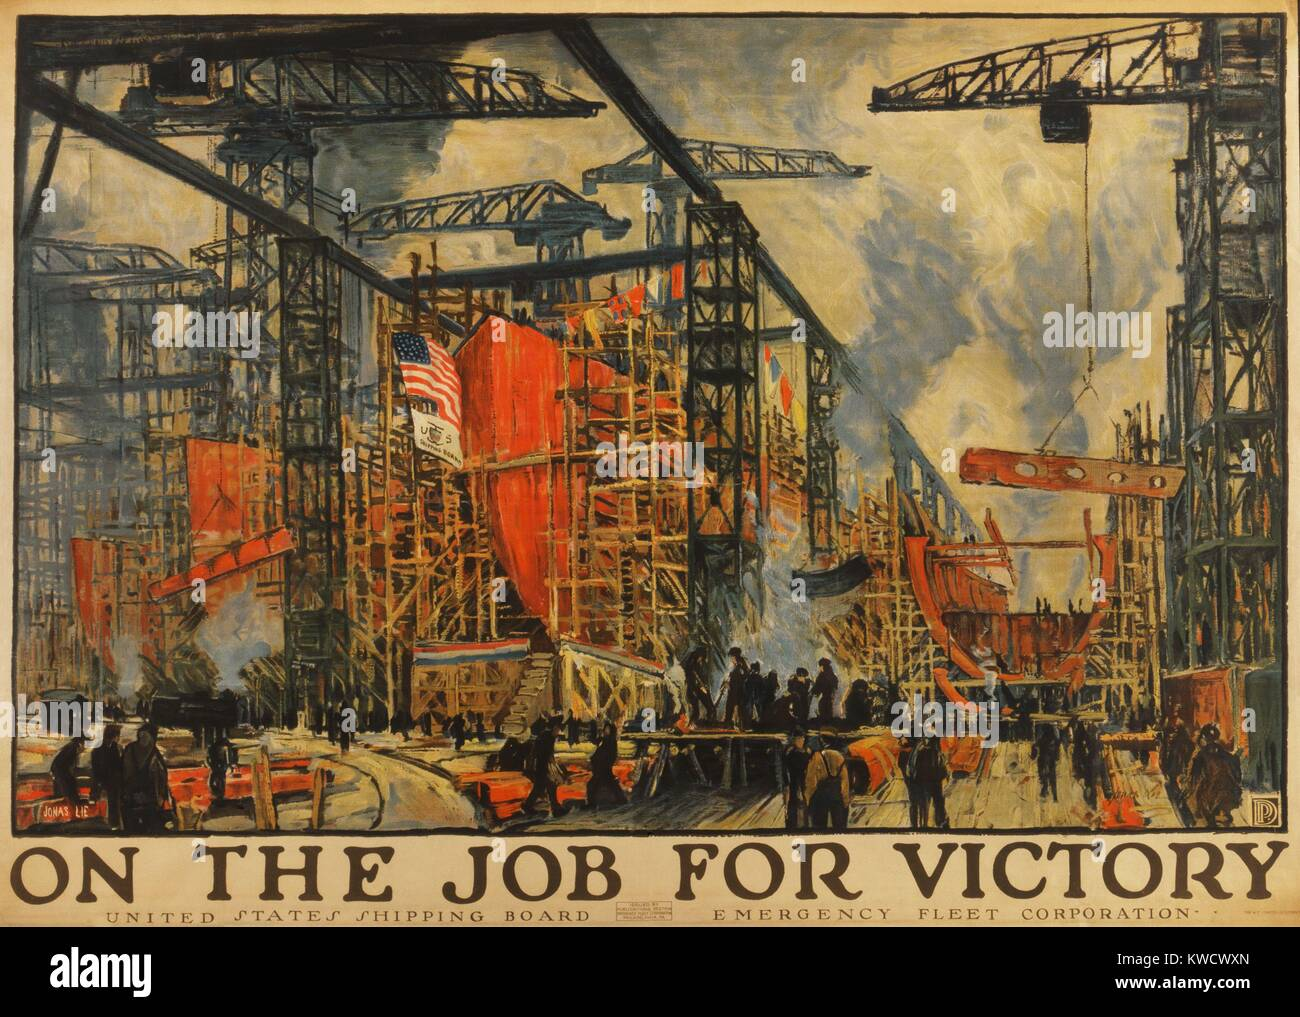 ON THE JOB FOR VICTORY. American Impressionistic painting of busy shipyard during World War 1. The Shipping Board - Stock Image